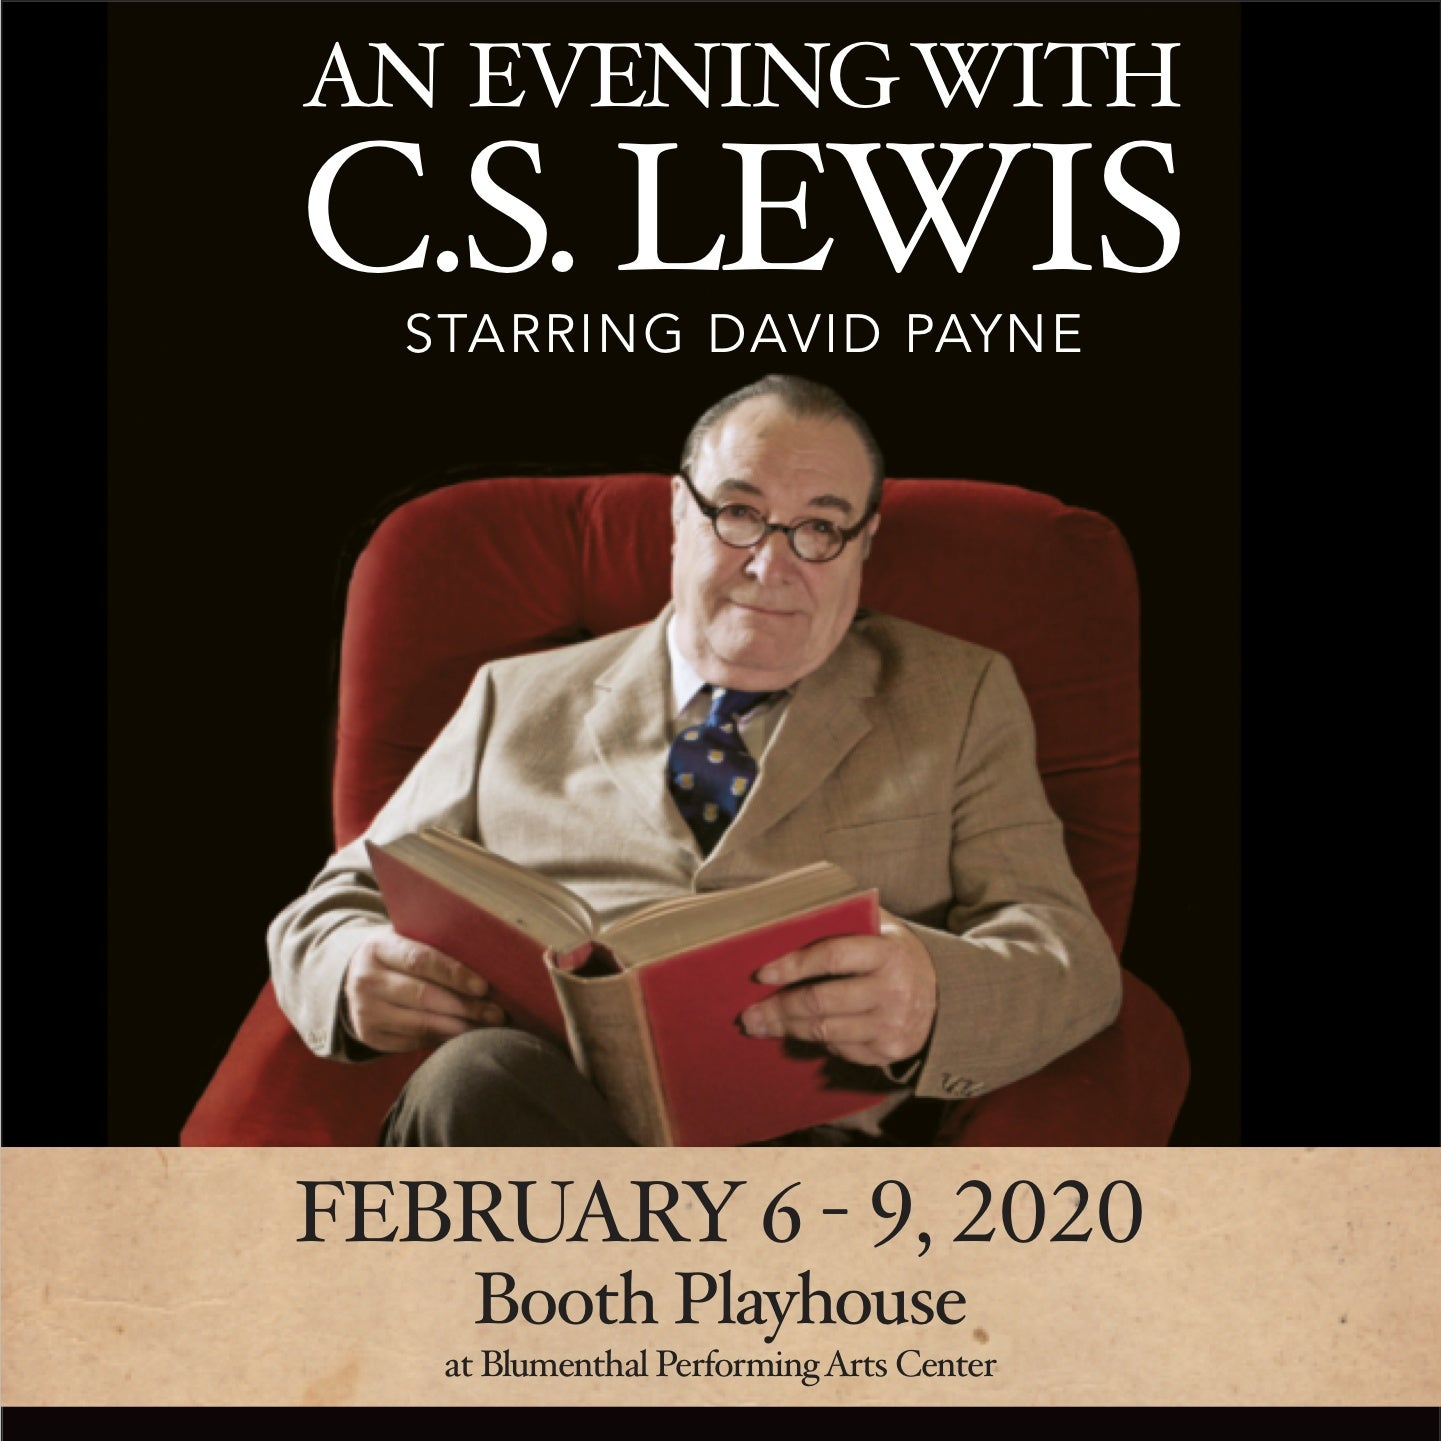 My Life's Journey: An Evening with C.S. Lewis